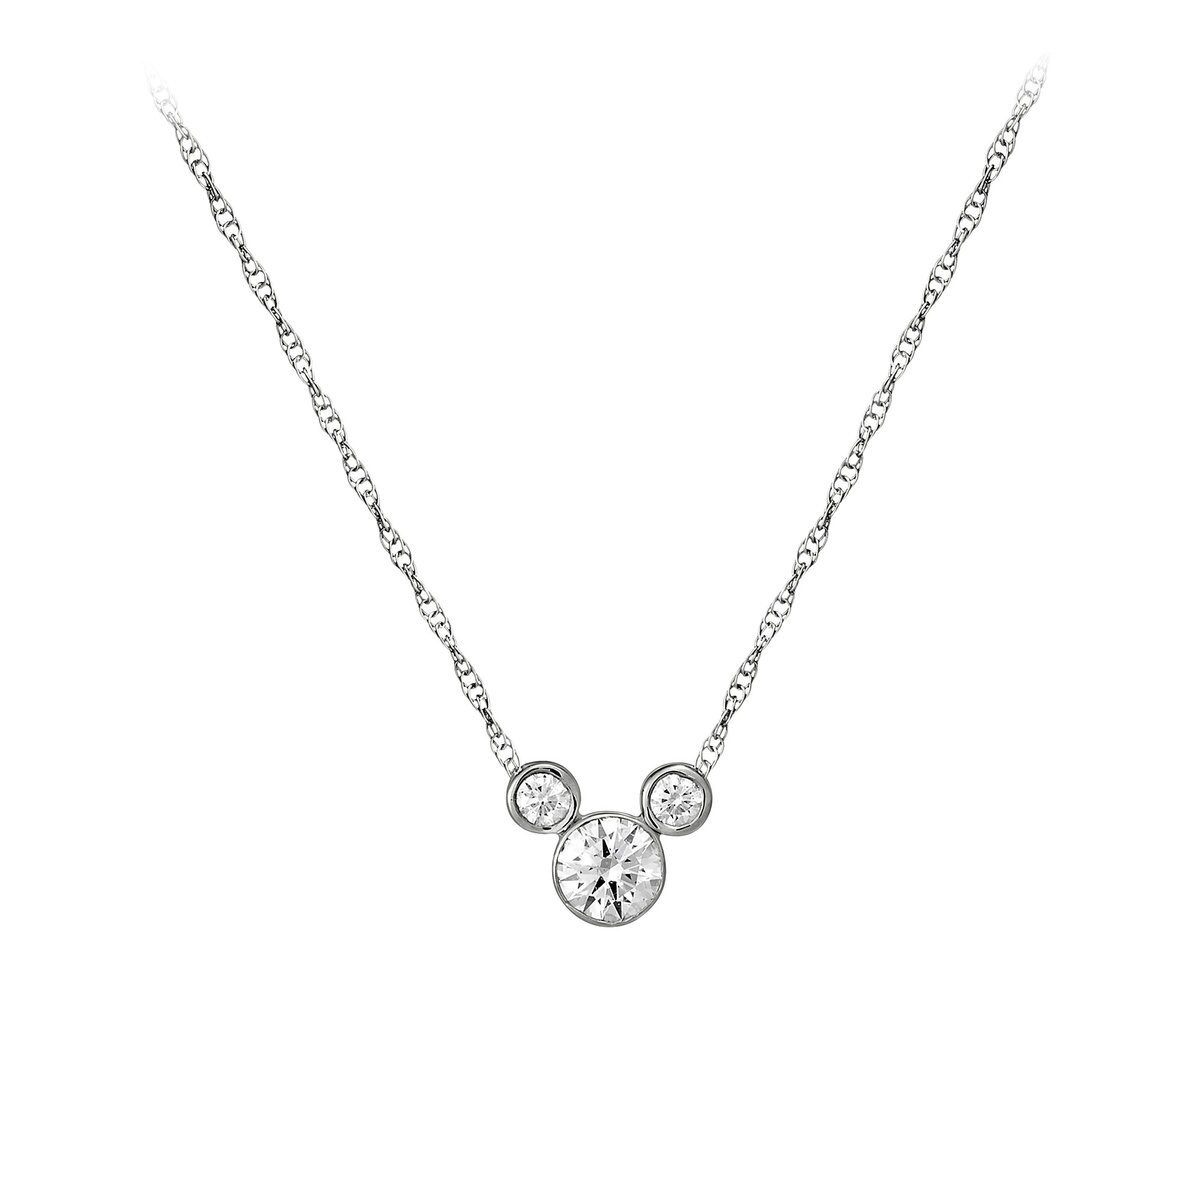 Mickey mouse necklace small shopdisney mickey mouse necklace small audiocablefo